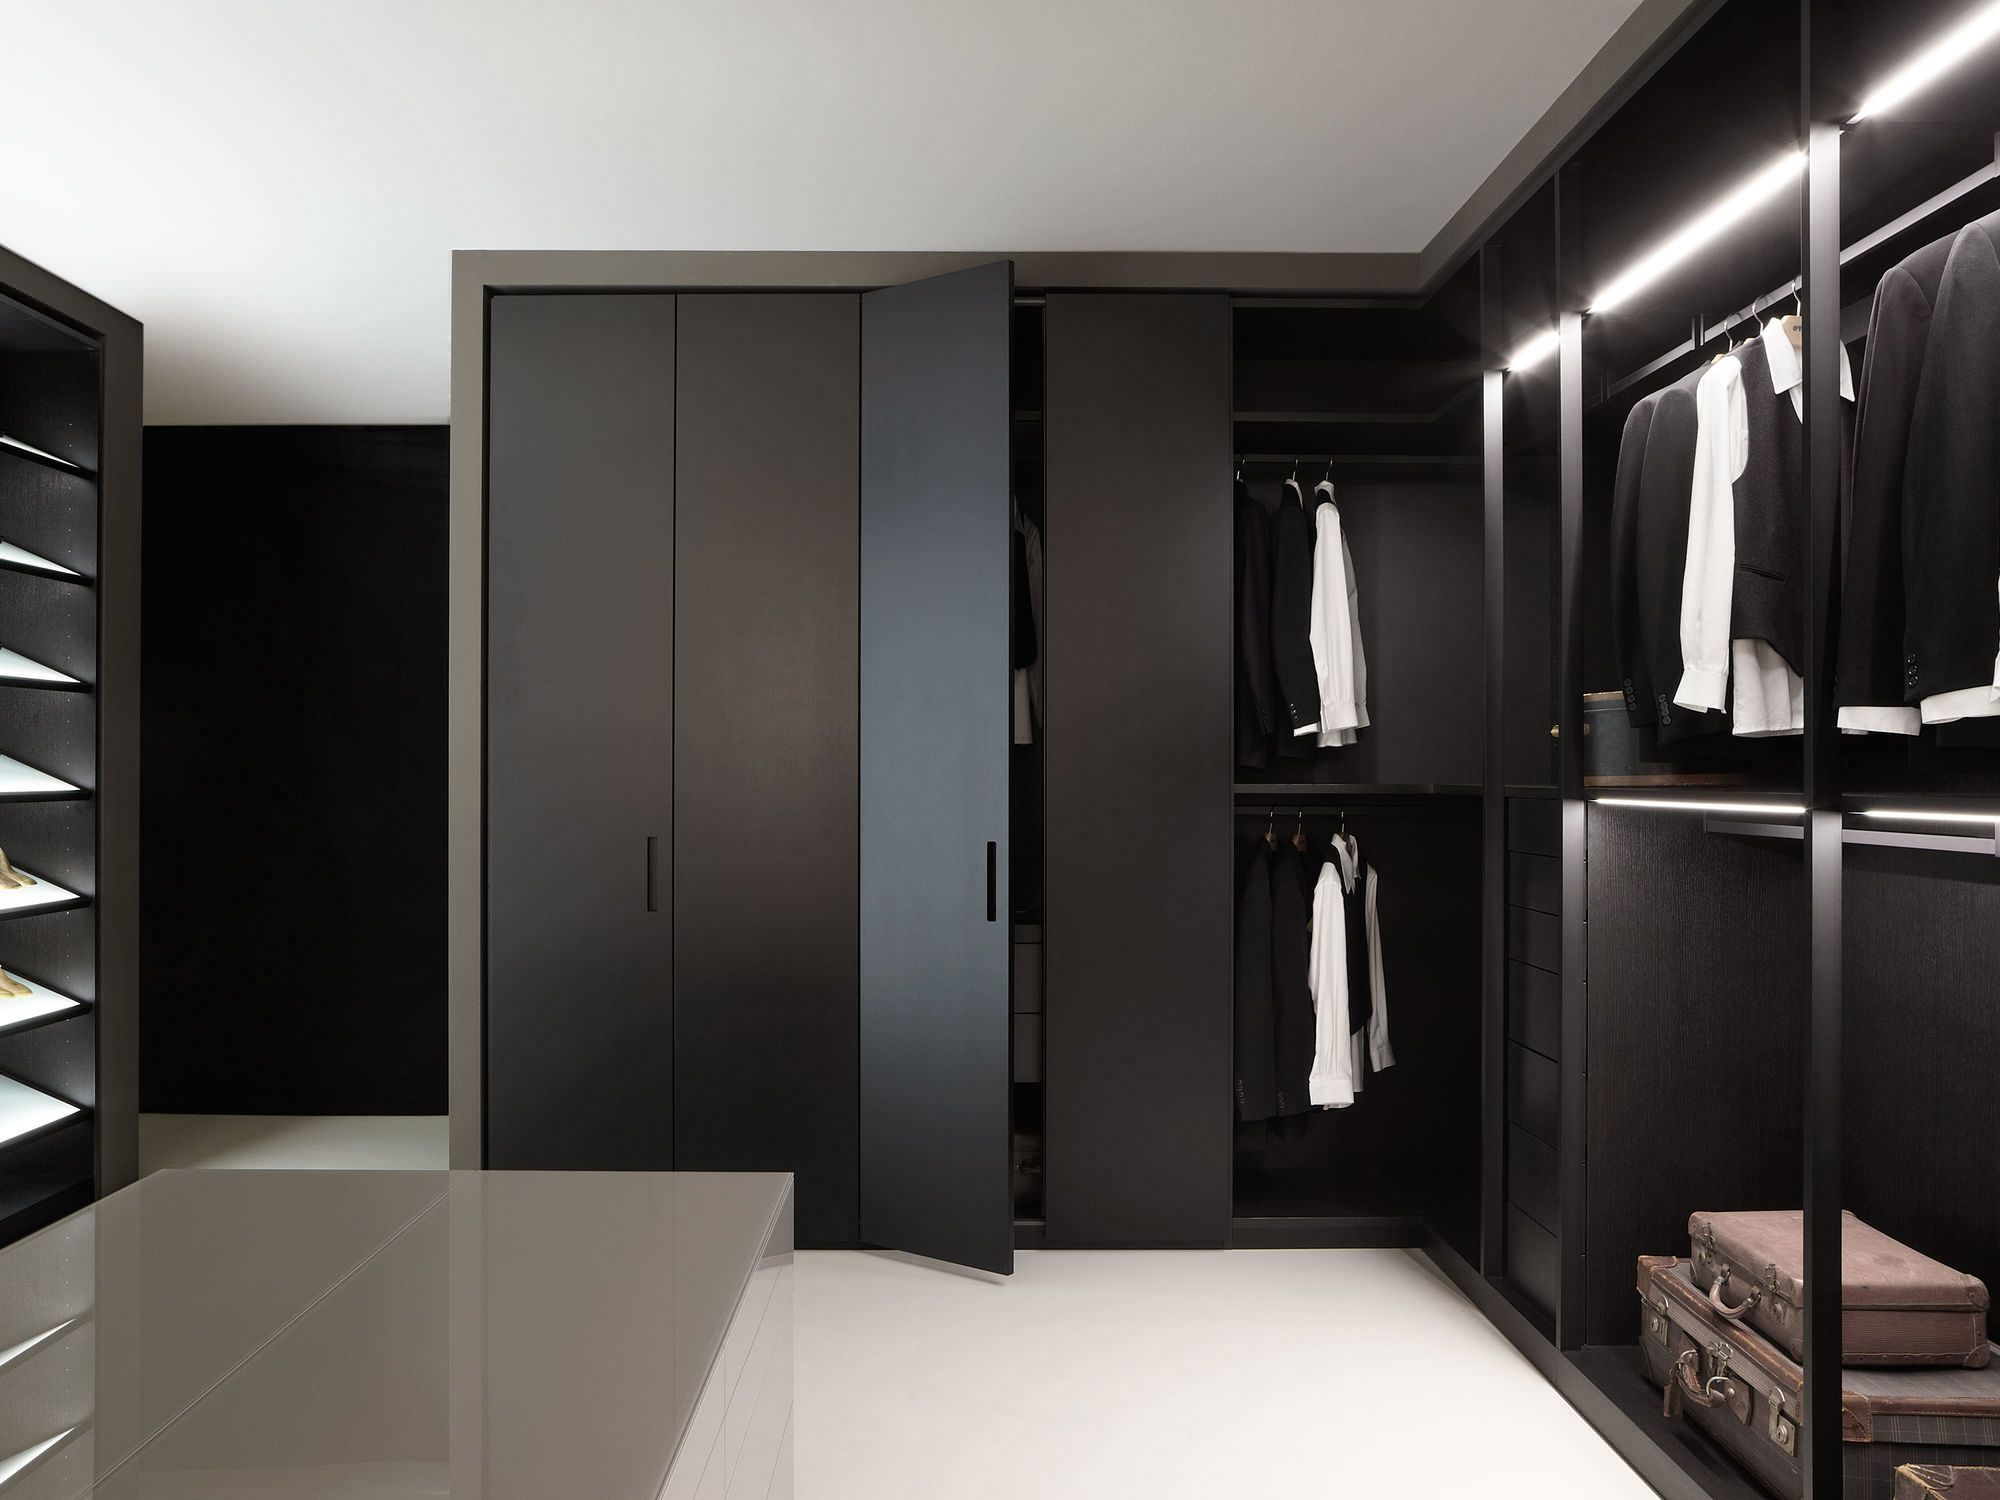 Bedrooms Yahoo Image Search Results ม ร ปภาพ